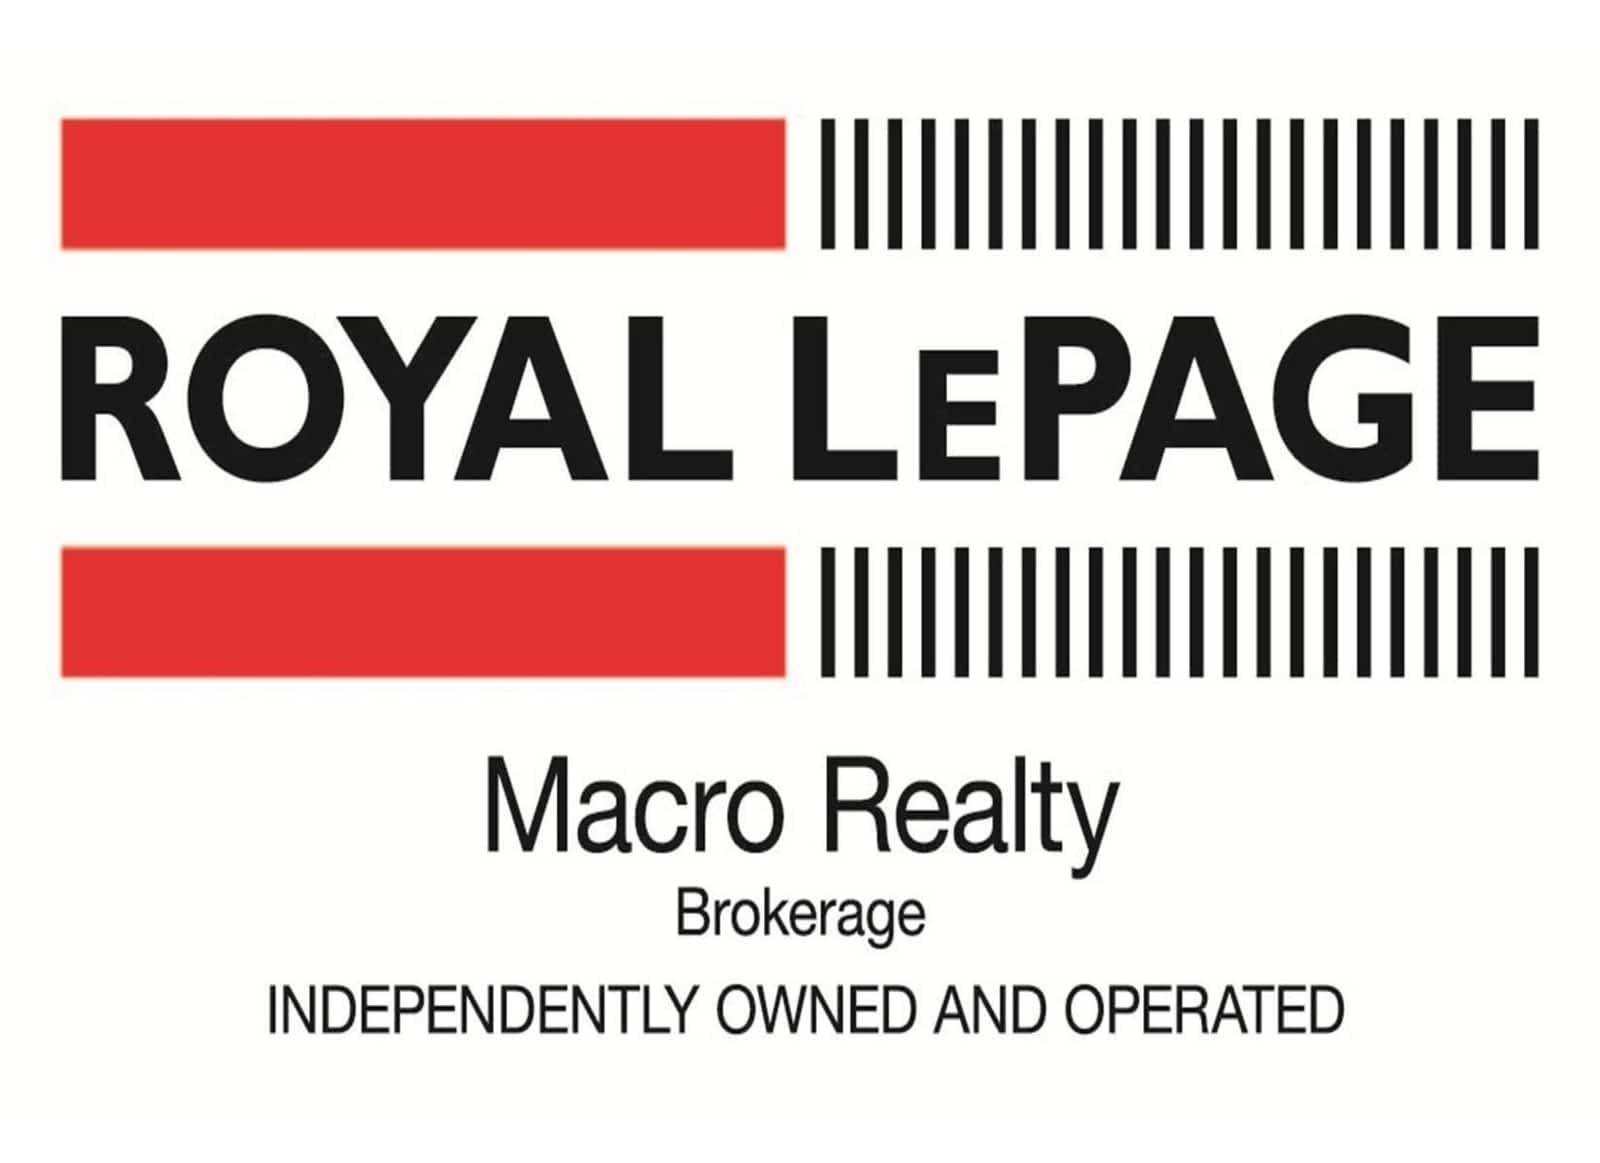 Royal LePage Macro Realty, Brokerage*